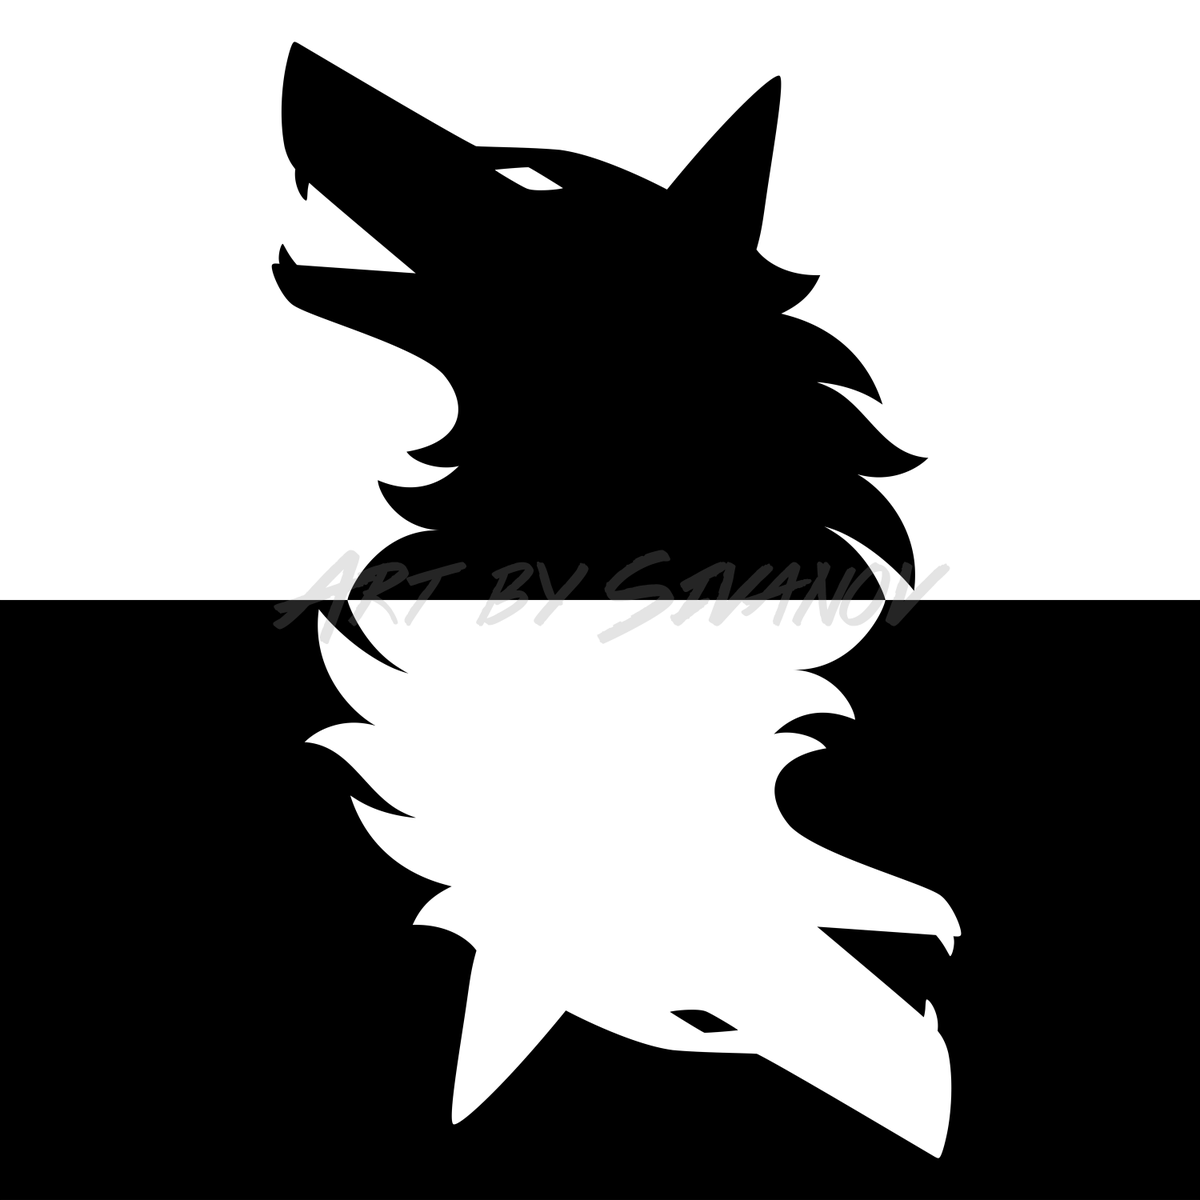 Howling Wolf Yin Yang Art by me  A black and white artwork of two wolves howling.  Available on Redbubble: https://www.redbubble.com/i/magnet/Wolf-Yin-Yang-by-S-ivanov/54184121.FF85S…  #WolfYinYang #YinYang #Wolf #wolves #Whitewolf #blackwolf, #feedtherightwolf #wolflovers #animals #wildlife #howlingwolf #digitalartpic.twitter.com/hrvDUXG6cw